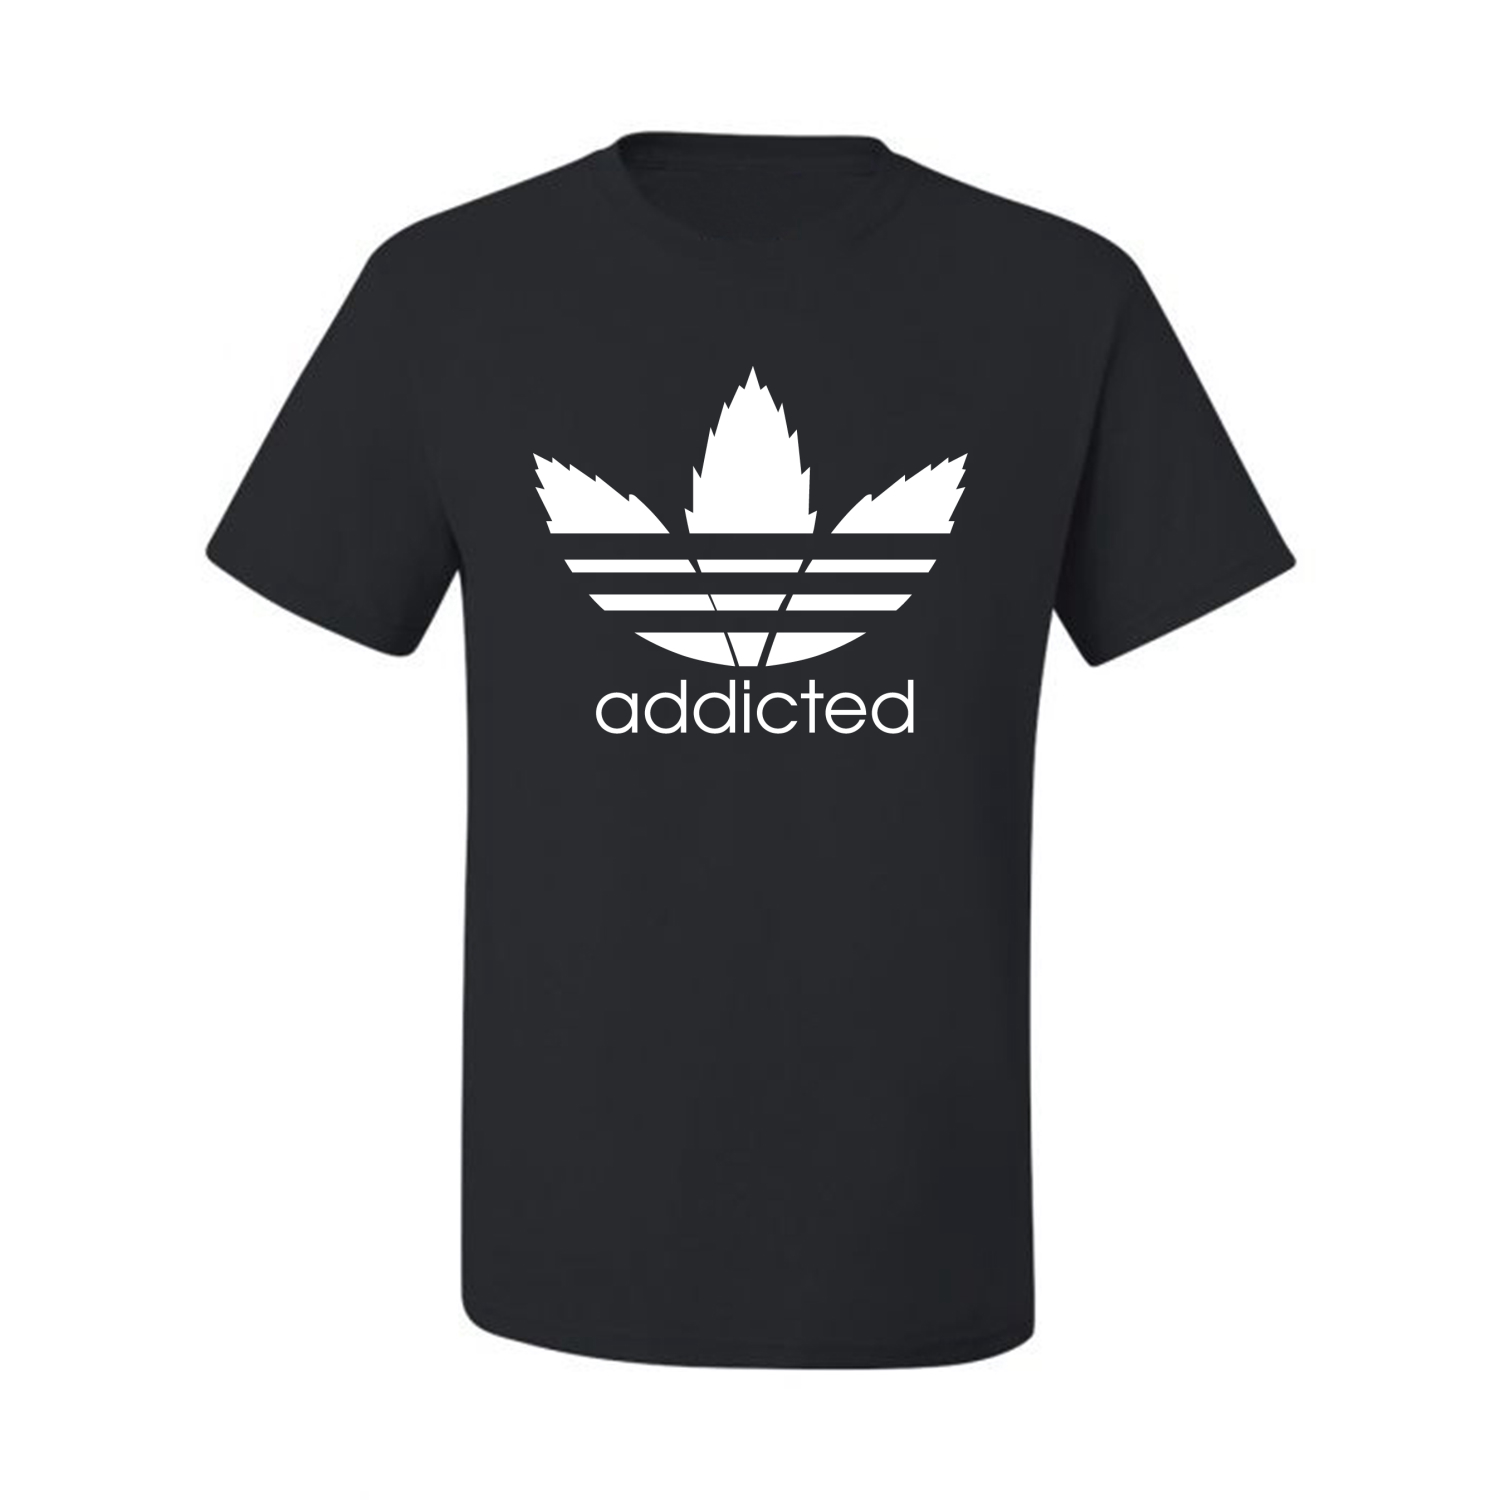 Addicted-White-Pot-Leaf-Mens-Weed-T-Shirt-Graphic-Parody-Tee thumbnail 4